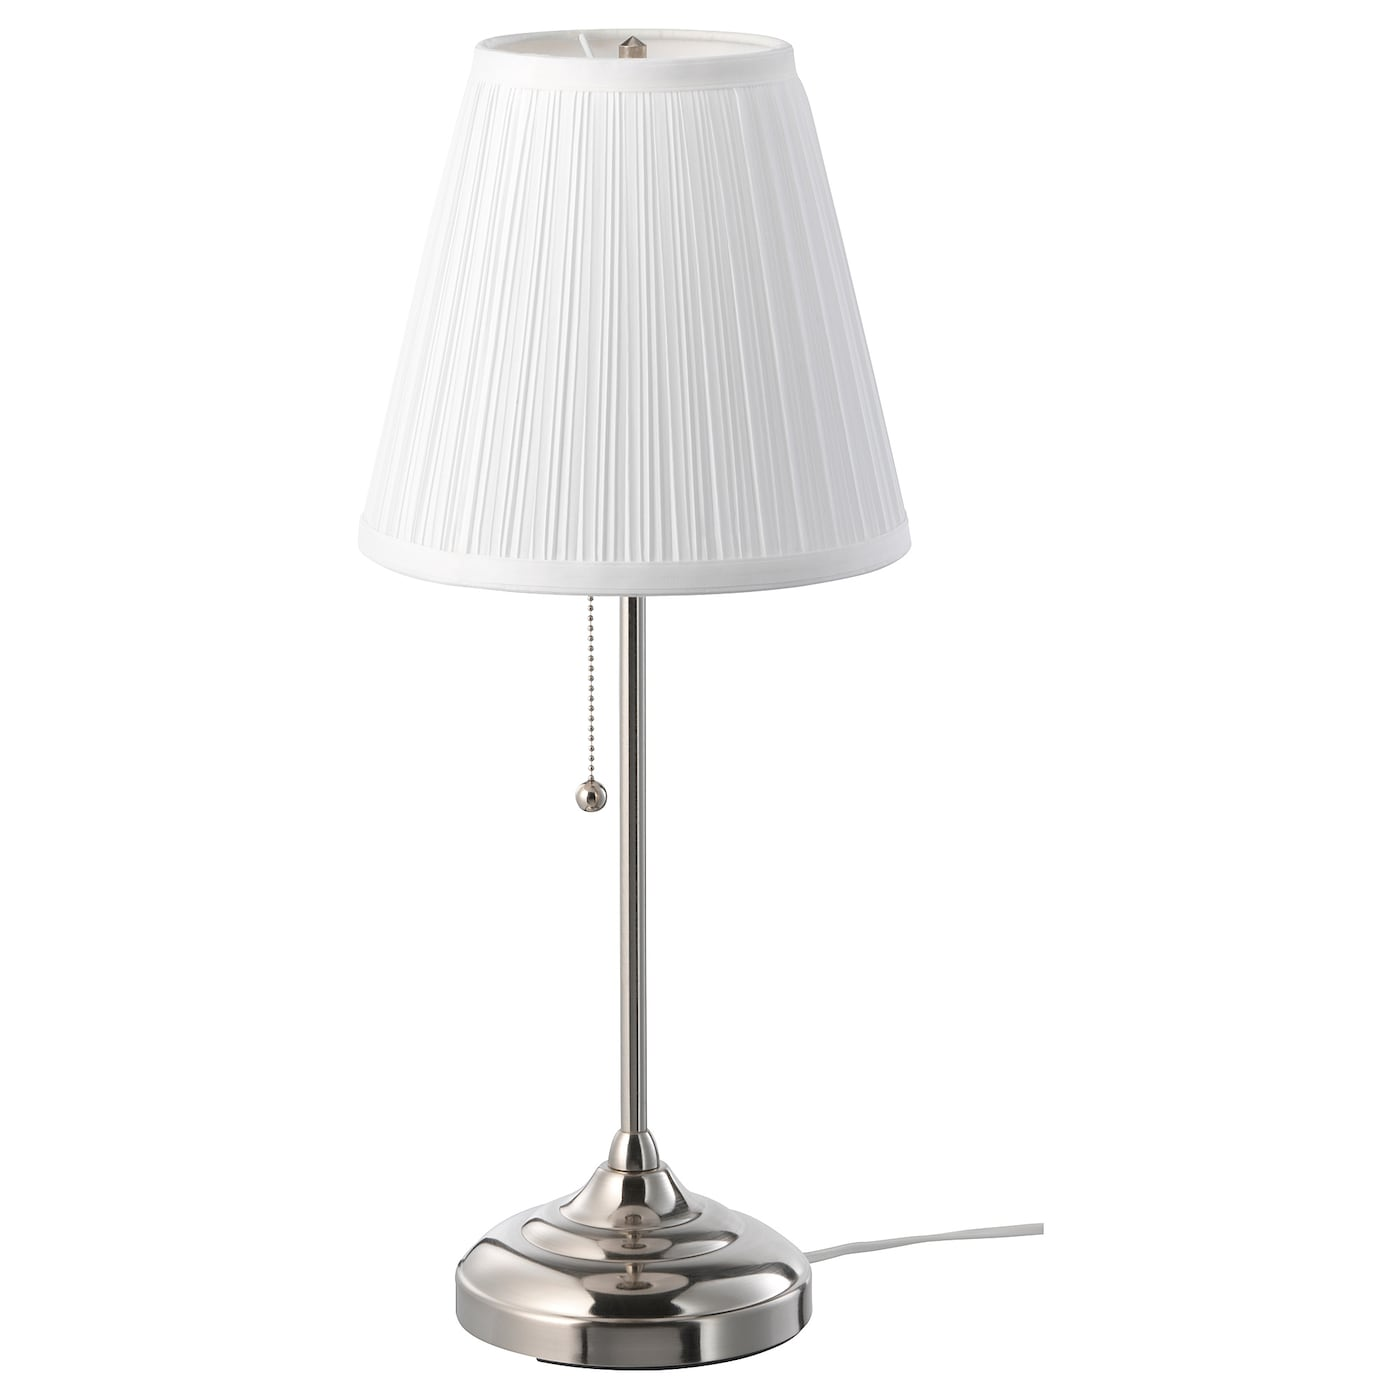 Lighting Lamps Led Ikea Lamp Wiring Black White Rstid Table The Textile Shade Provides A Diffused And Decorative Light